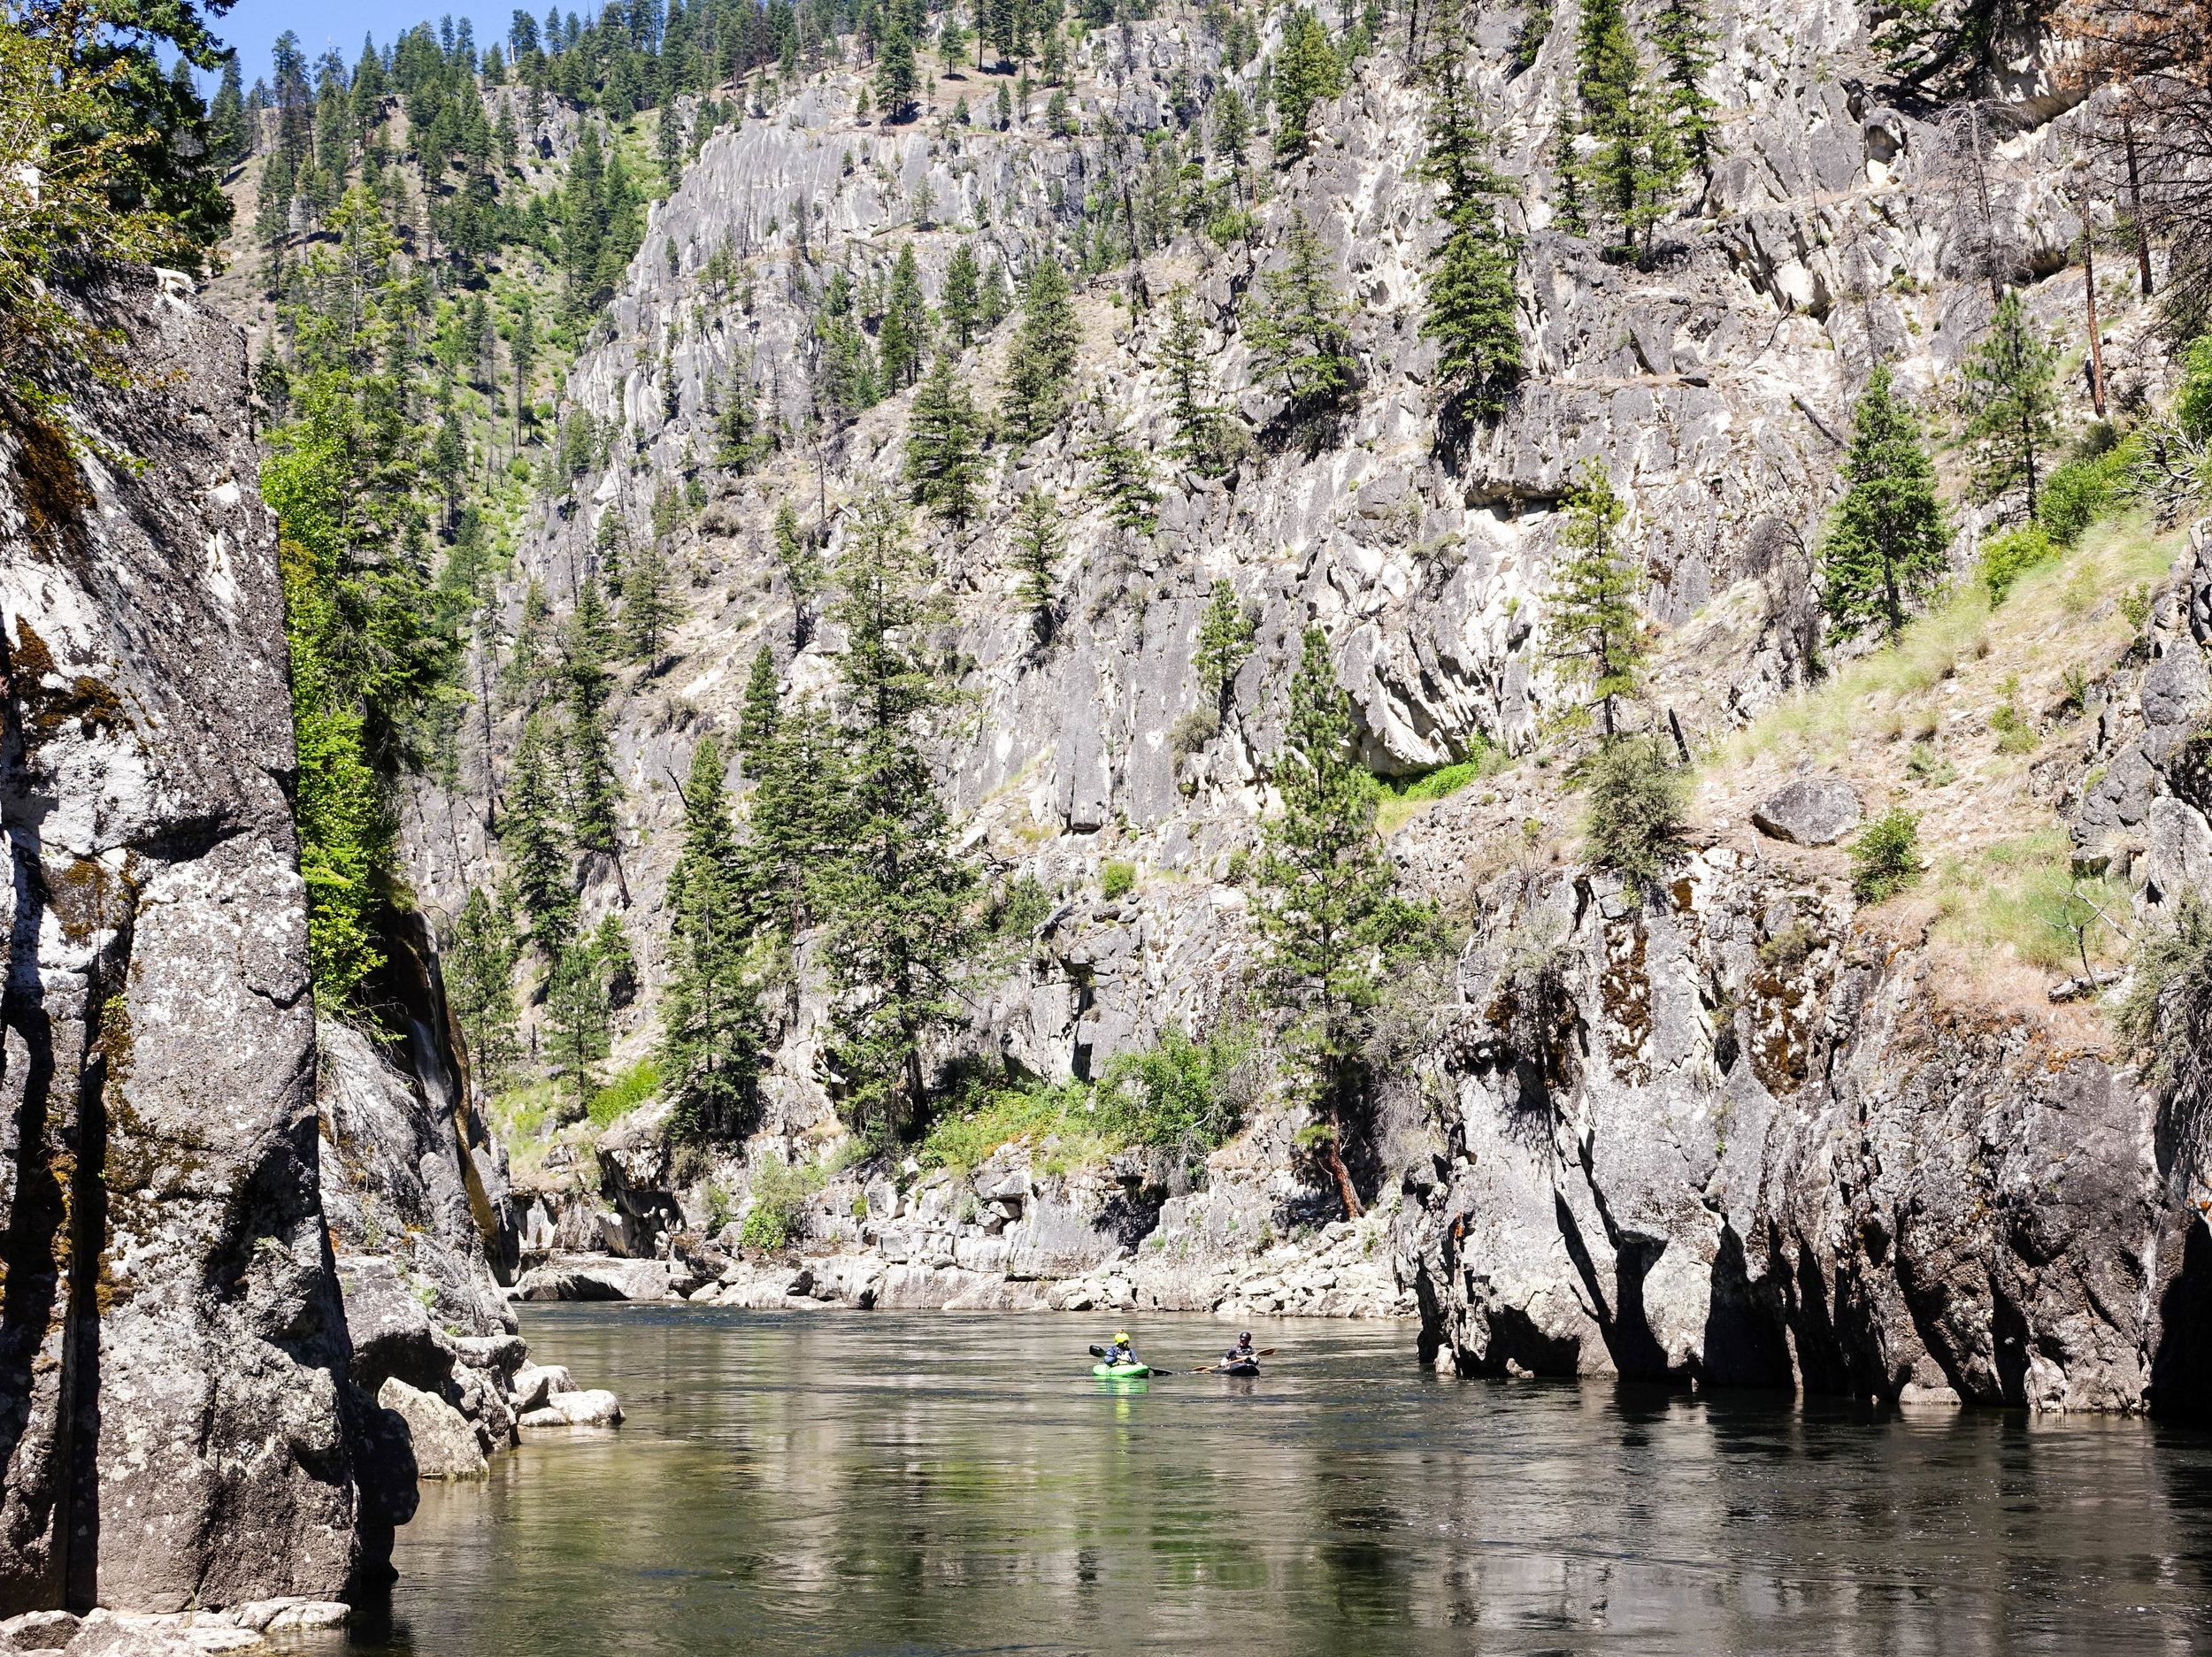 """- """"I had done several Main Salmon runs while growing up and had always floated by the south fork with wonder. The Main Salmon guides had told me that the South Fork was substantially more difficult and was big with the kayakers. I had to know what was up that valley. Where had that water come from? What had it been through? My wonder and imagination went wild. Years passed before I returned to the Idaho area … The river was truly magnificent. Something about being in that majestic river valley with nothing but my kayak and gear made for some of the best summer days of my life.""""-Colby Bishop, Seattle, Wash."""